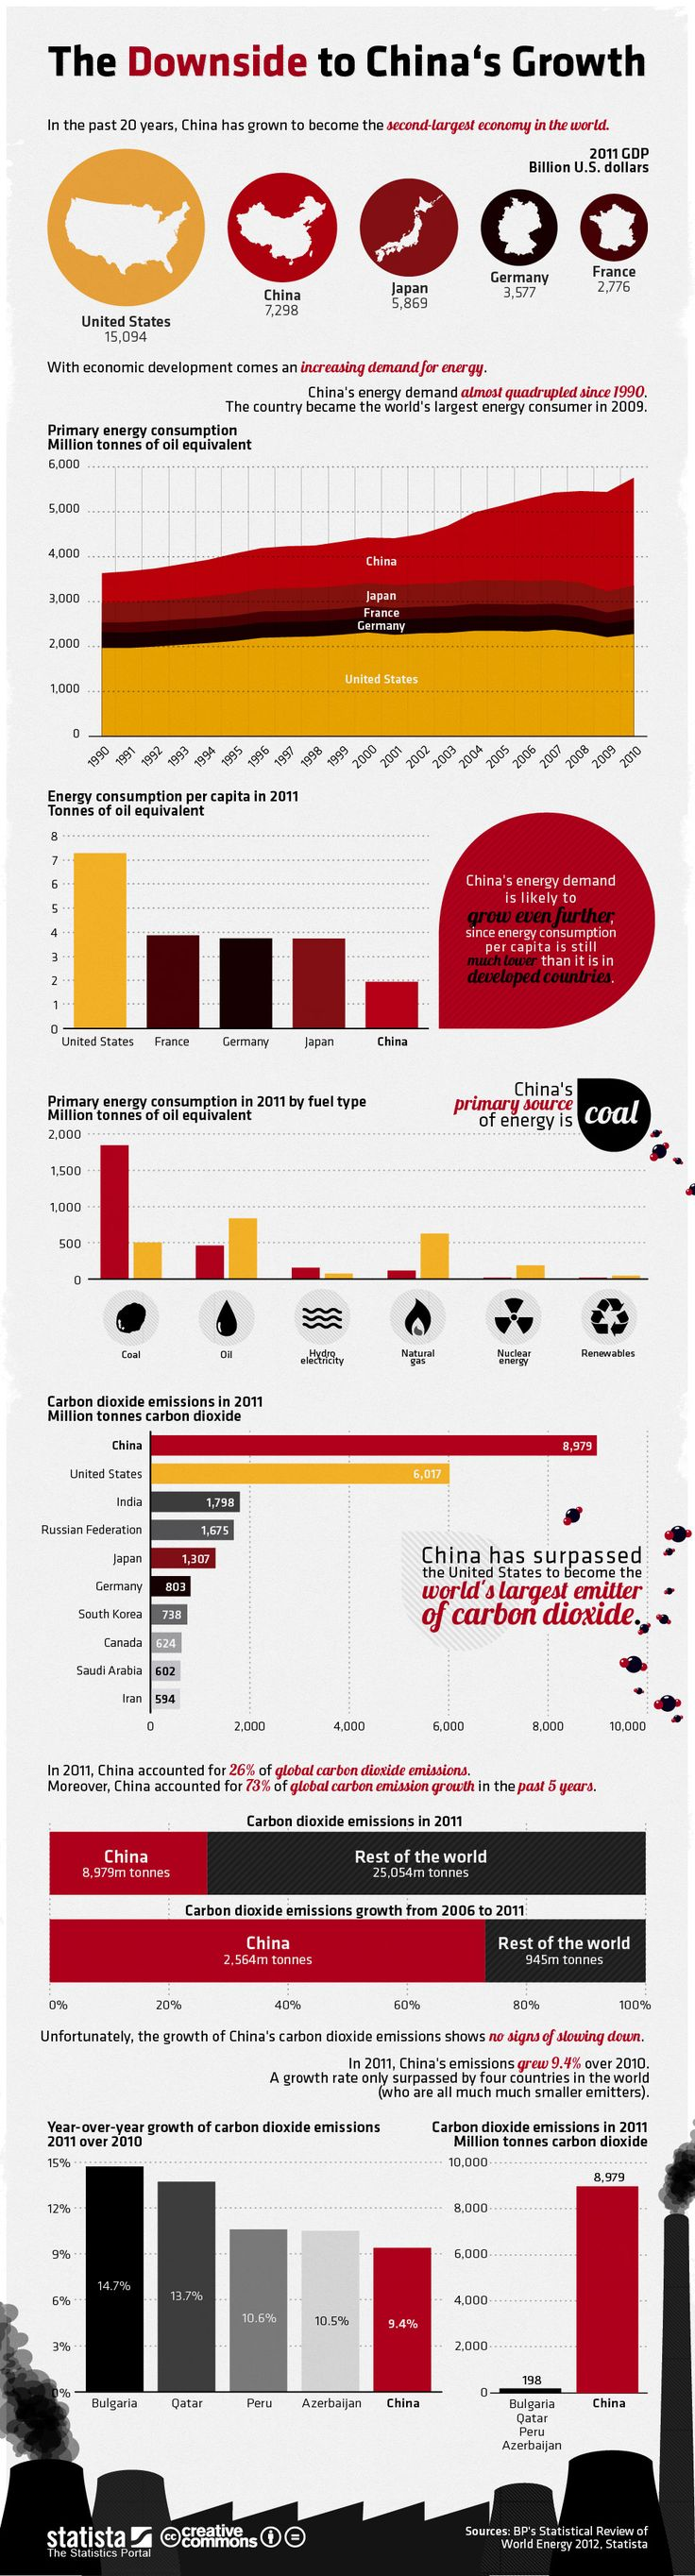 This infographic illustrates the downside to China's economic growth: the country's ever-growing energy demand.